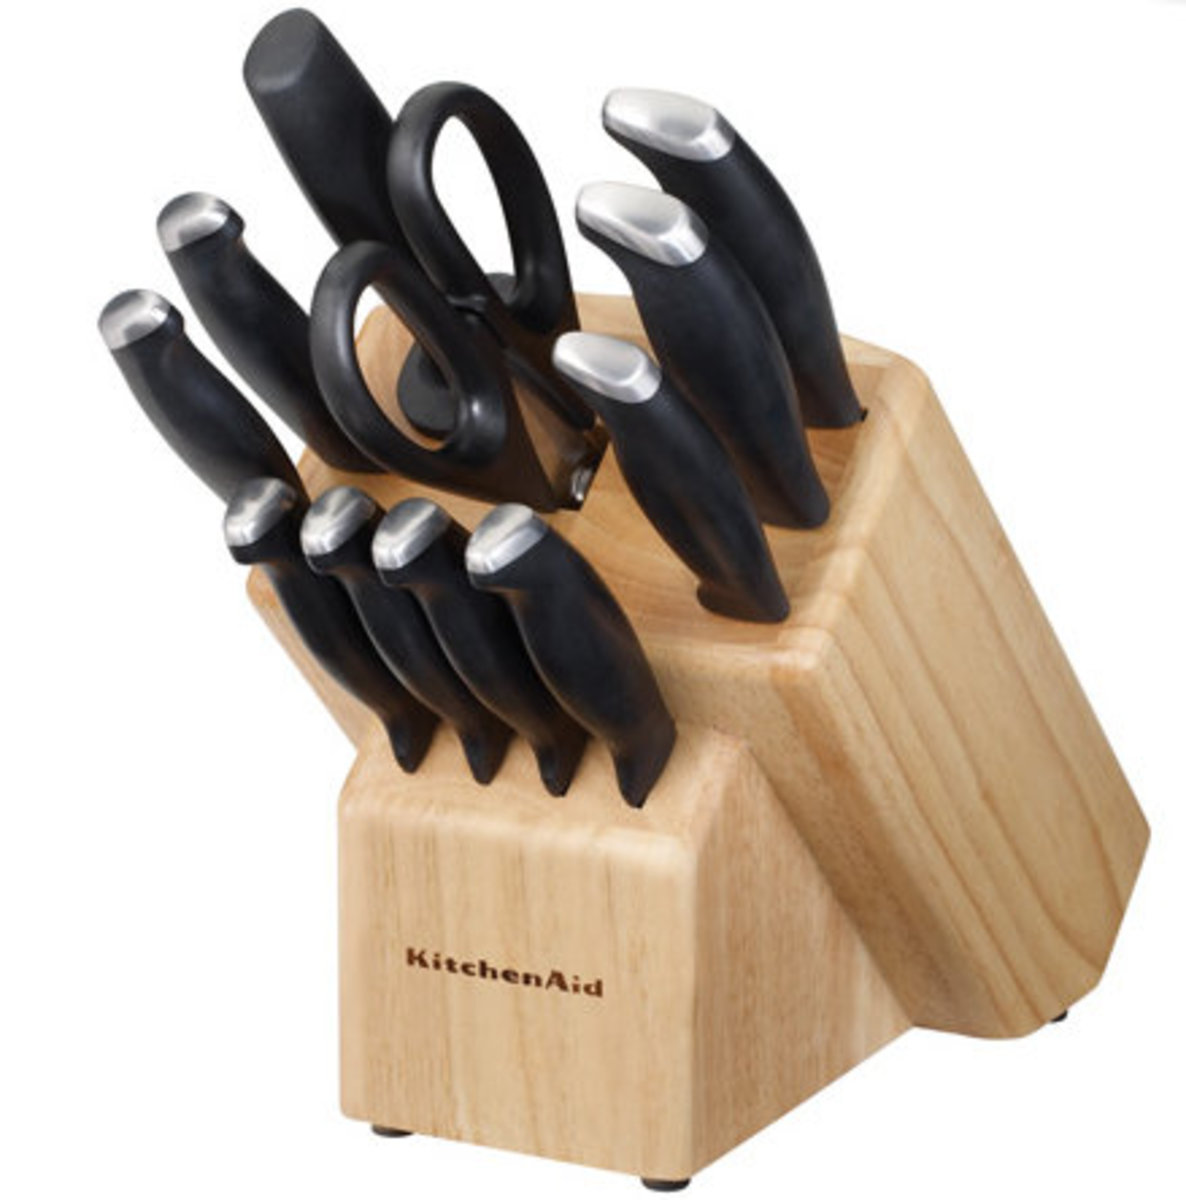 kitchen aid knives